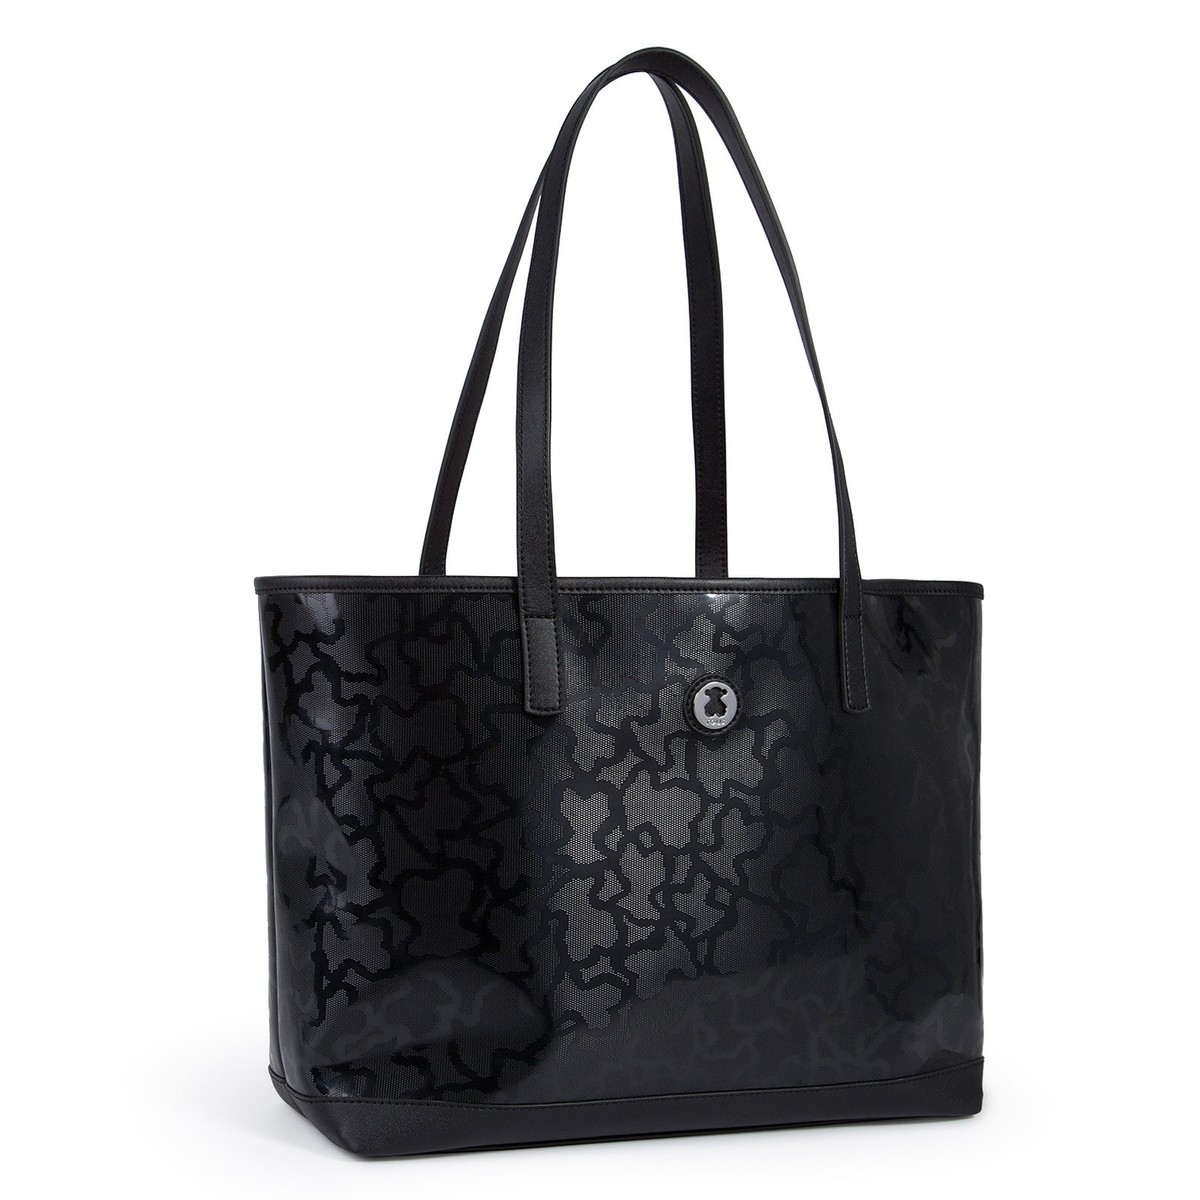 7ba78d2e0d Black colored Kaos Shiny Tote bag - Tous Site US